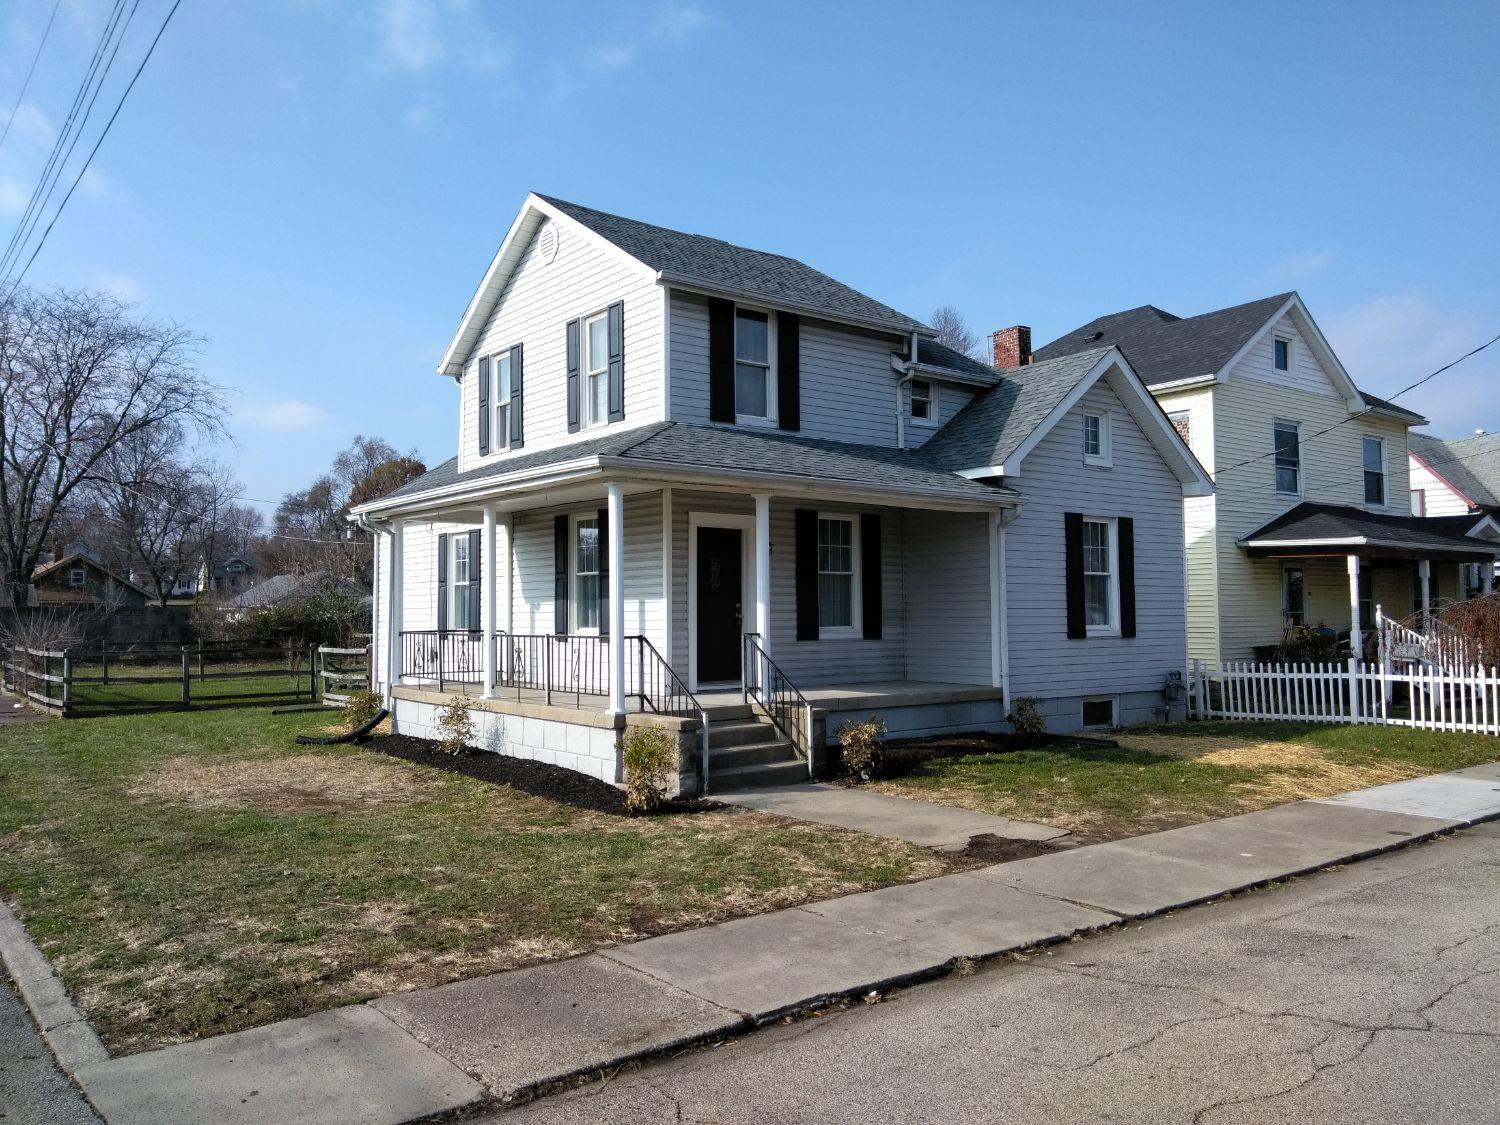 Property for sale at 101 N Second Street, Trenton,  OH 45067